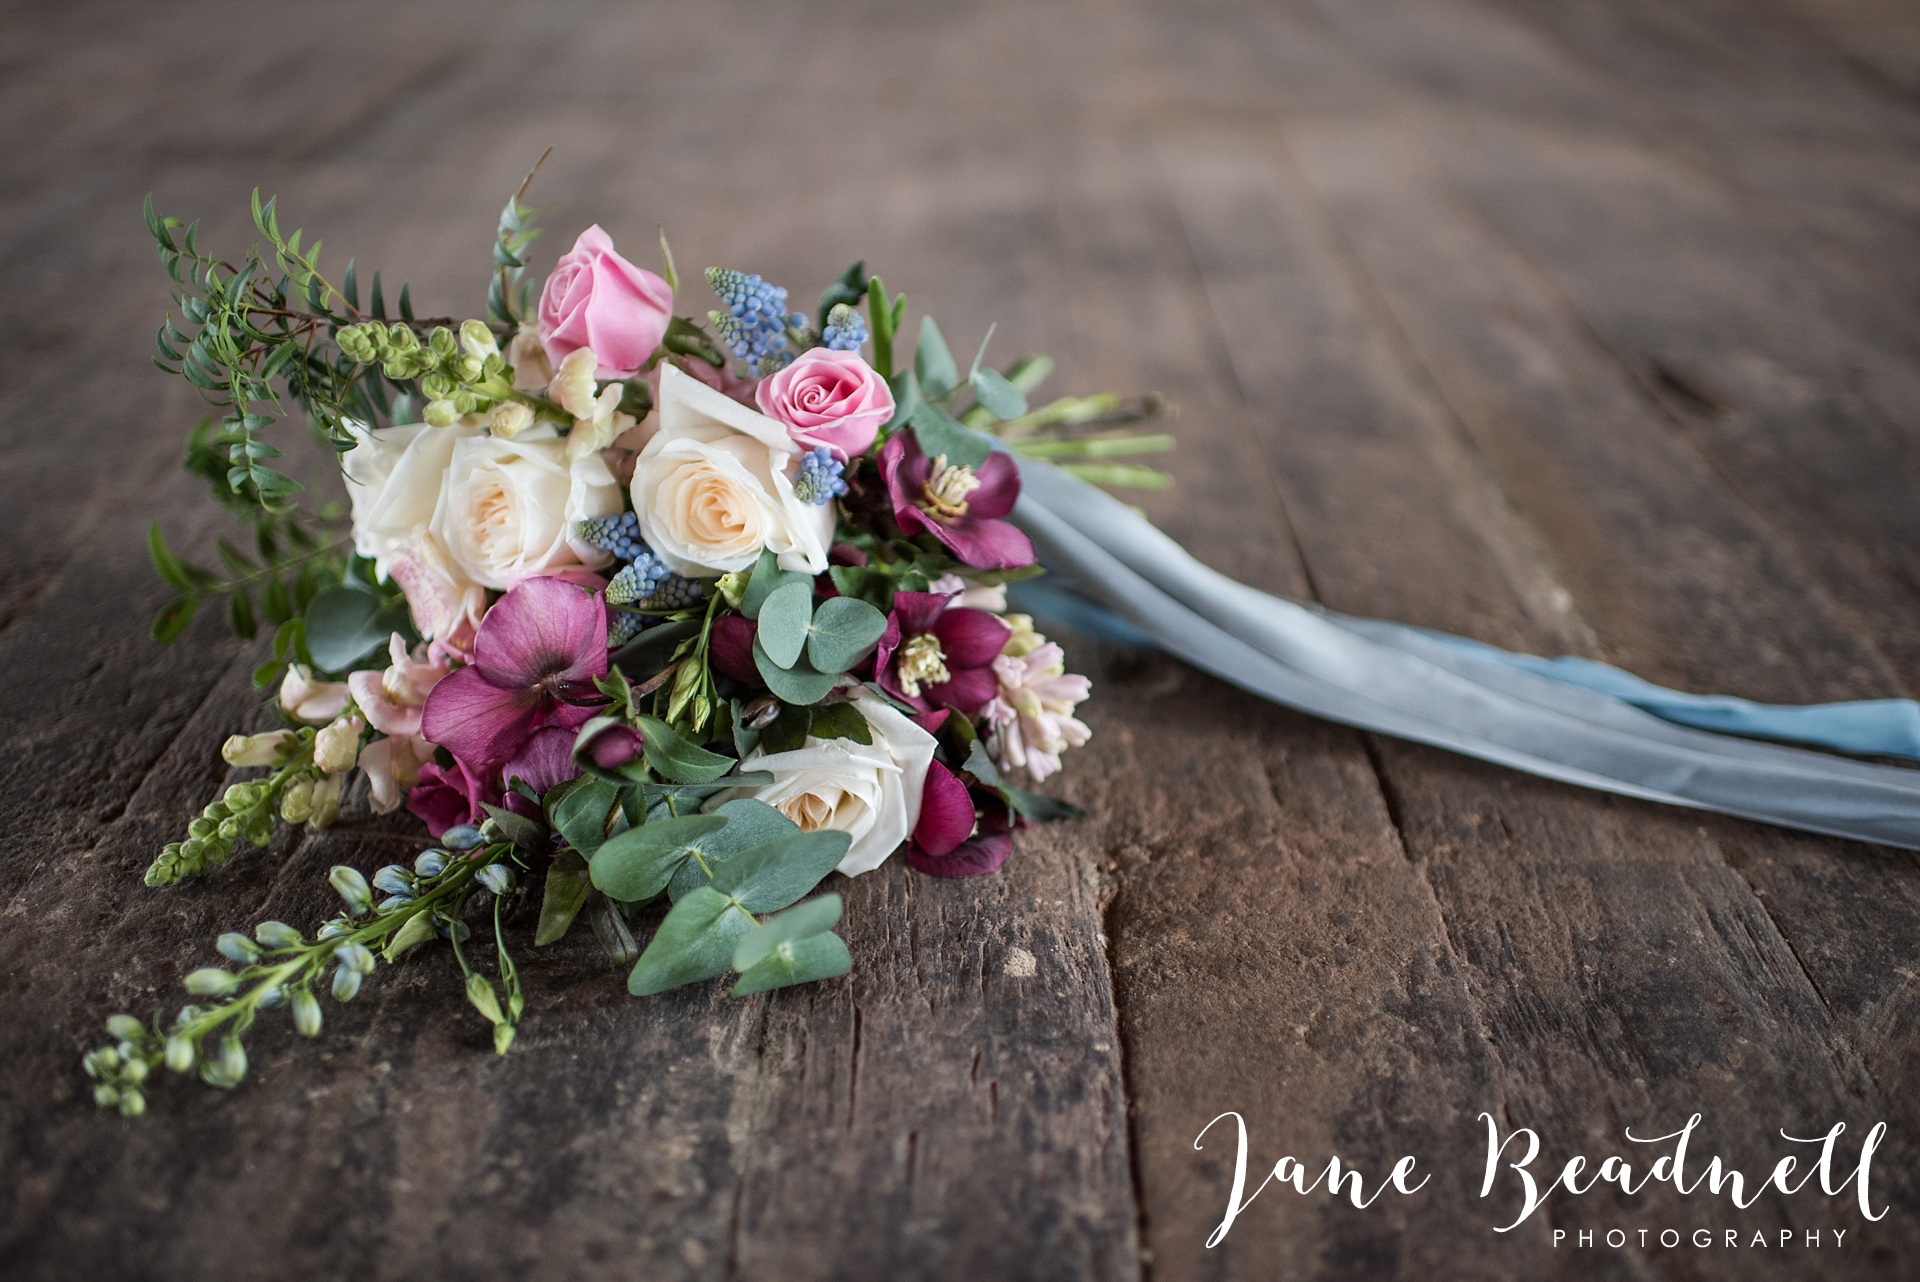 Ballet themed styled wedding shoot at Dalton Mills by Jane Beadnell Photography-0_0002